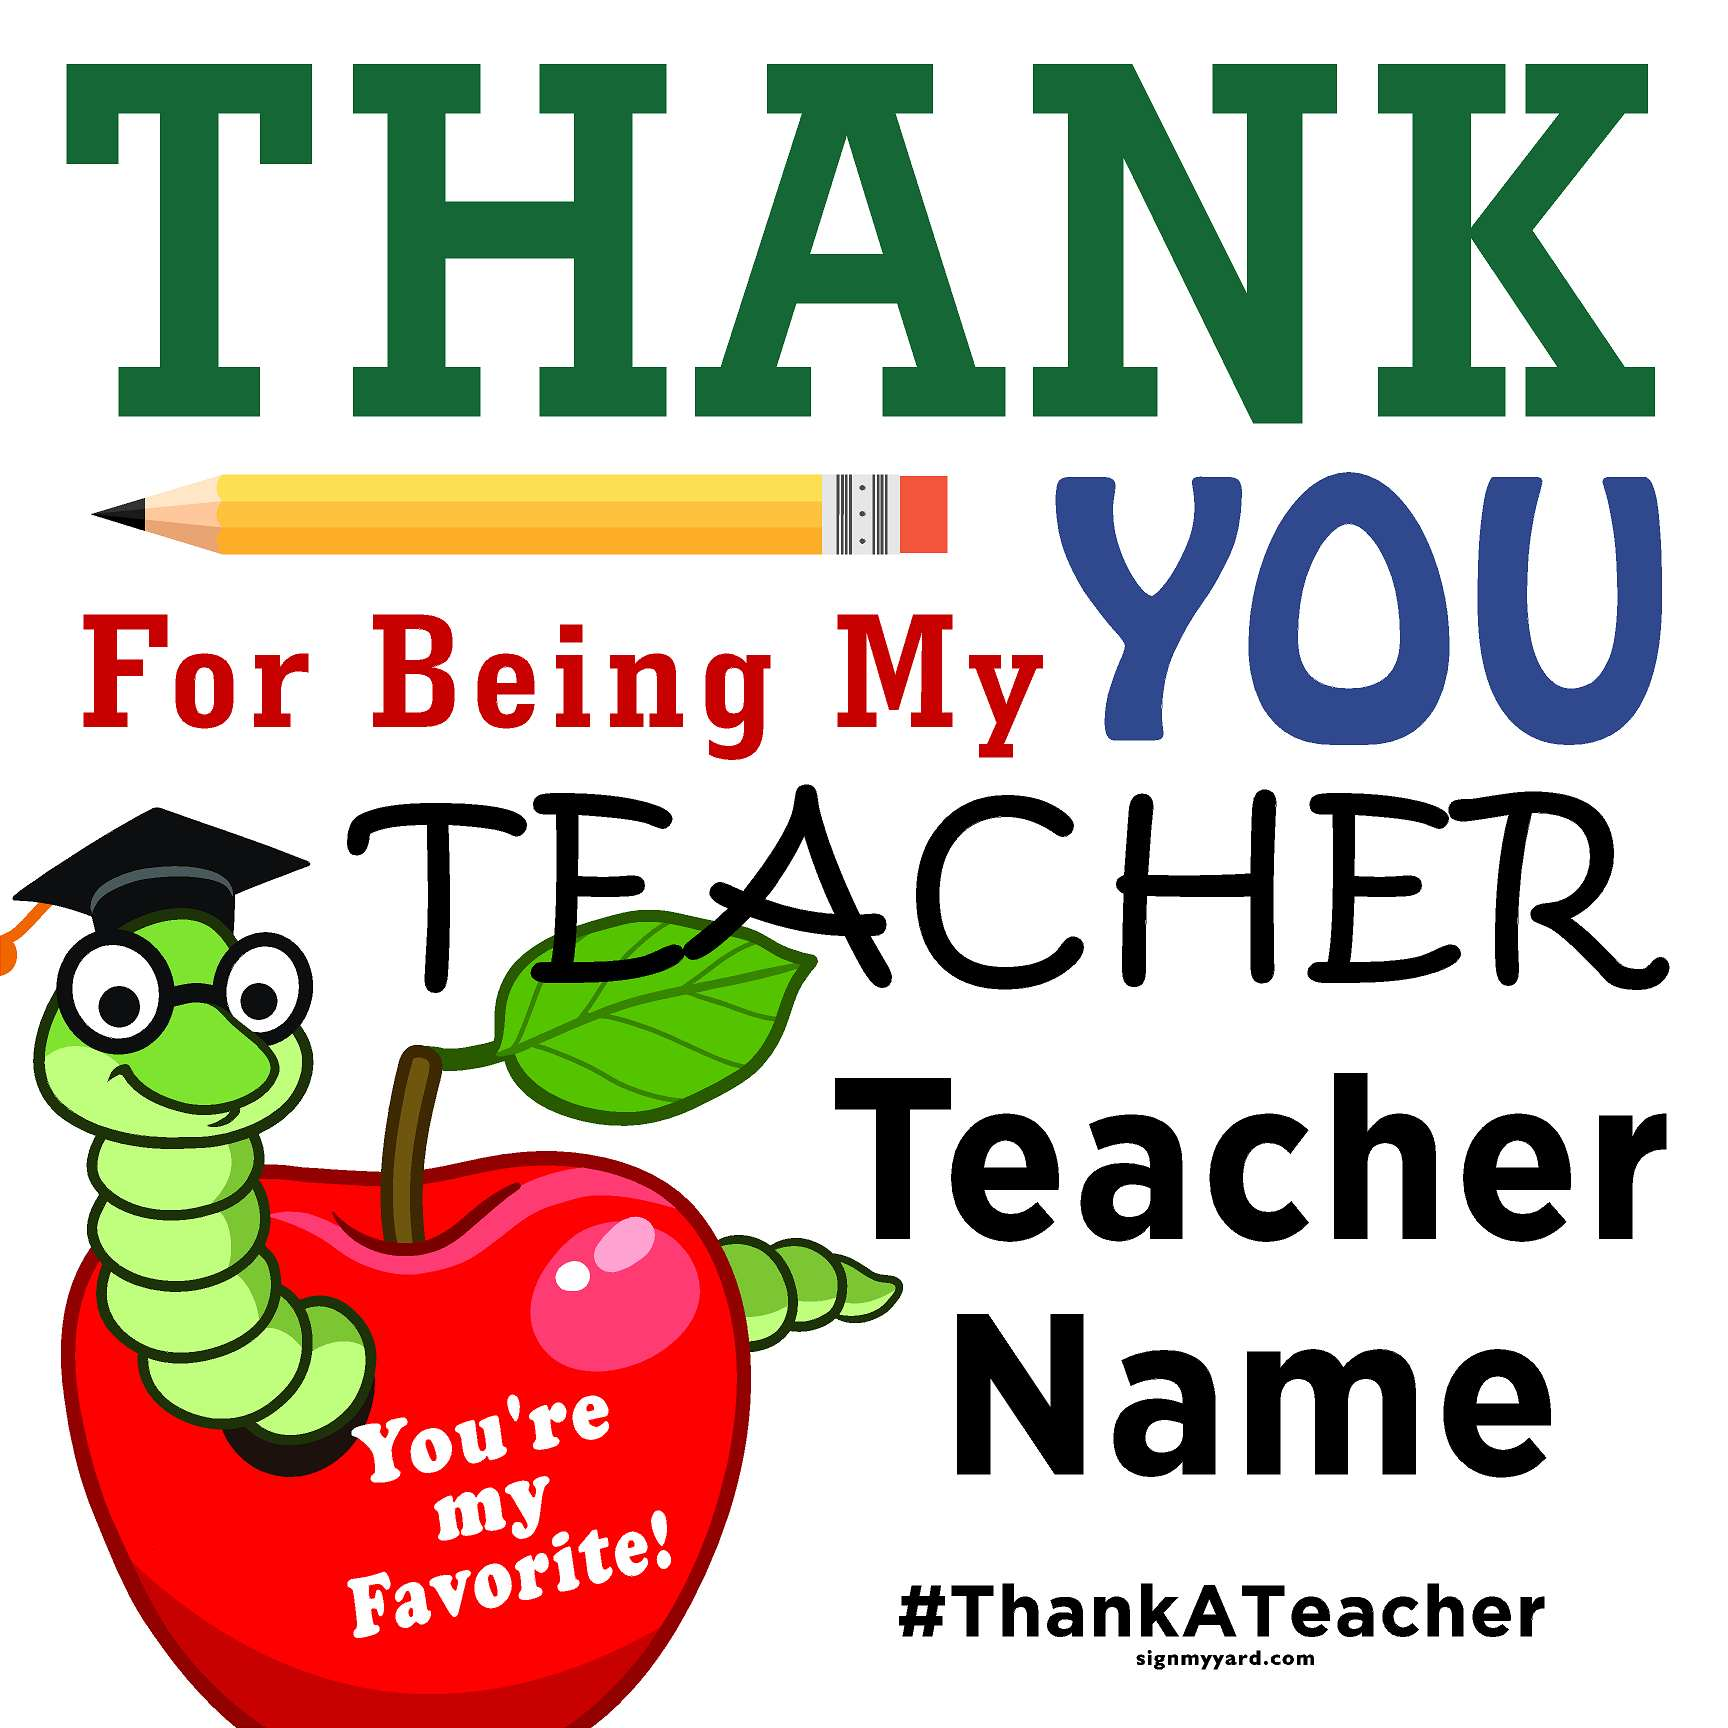 Thank a Teacher 24x24 Yard Sign (Option B)